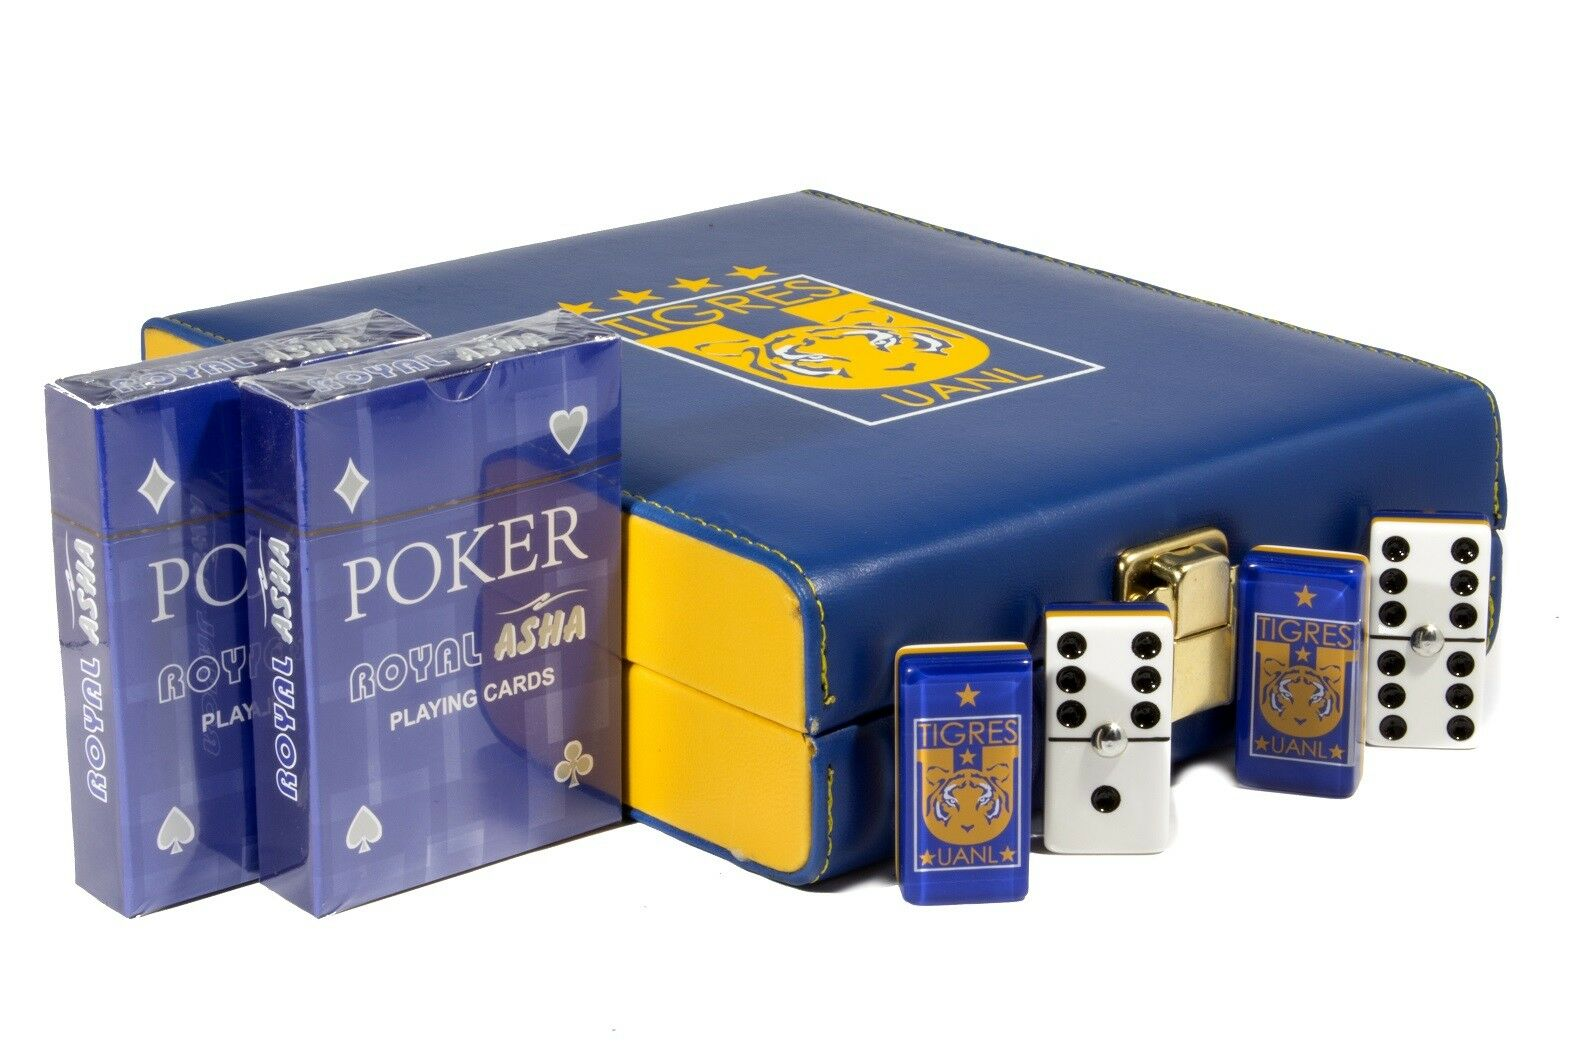 Tigres UANL Deluxe Set 2 Games  Domino, 2 Poker Cards